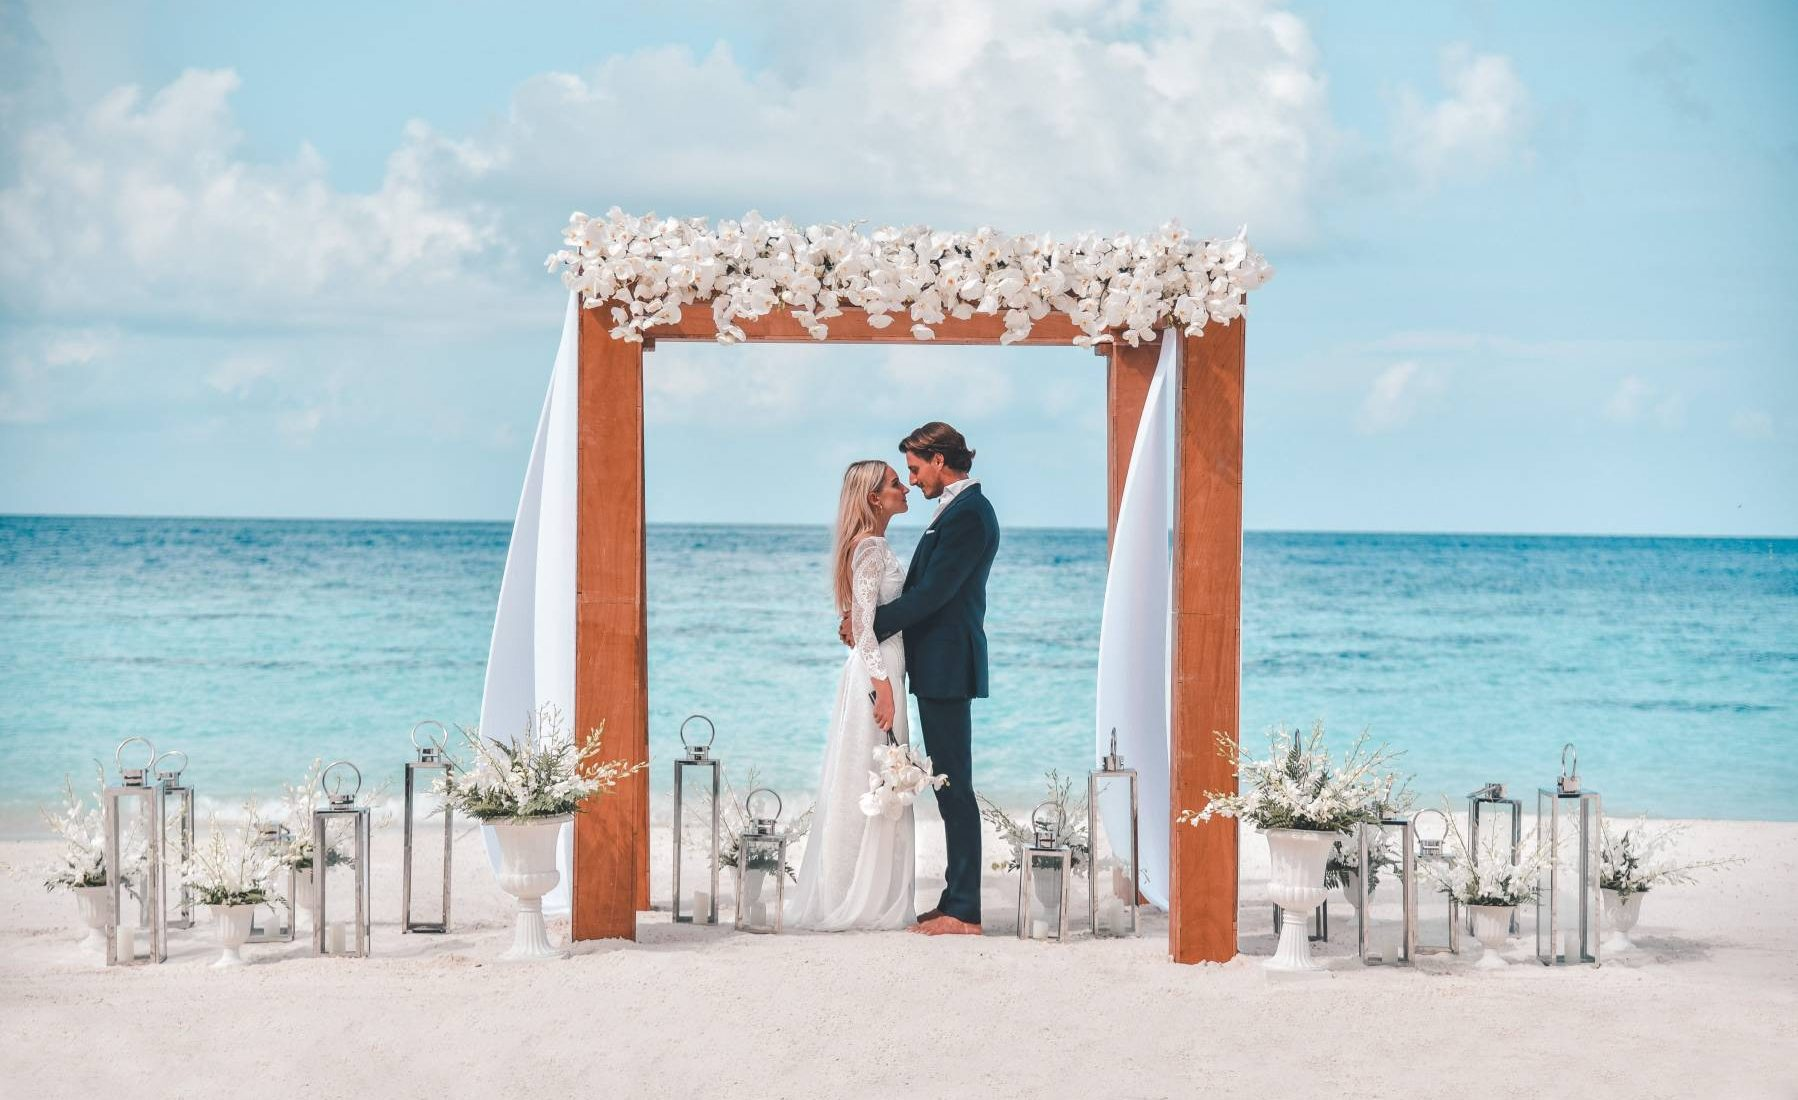 Raffles Maldives Meradhoo - A marriage made in paradise